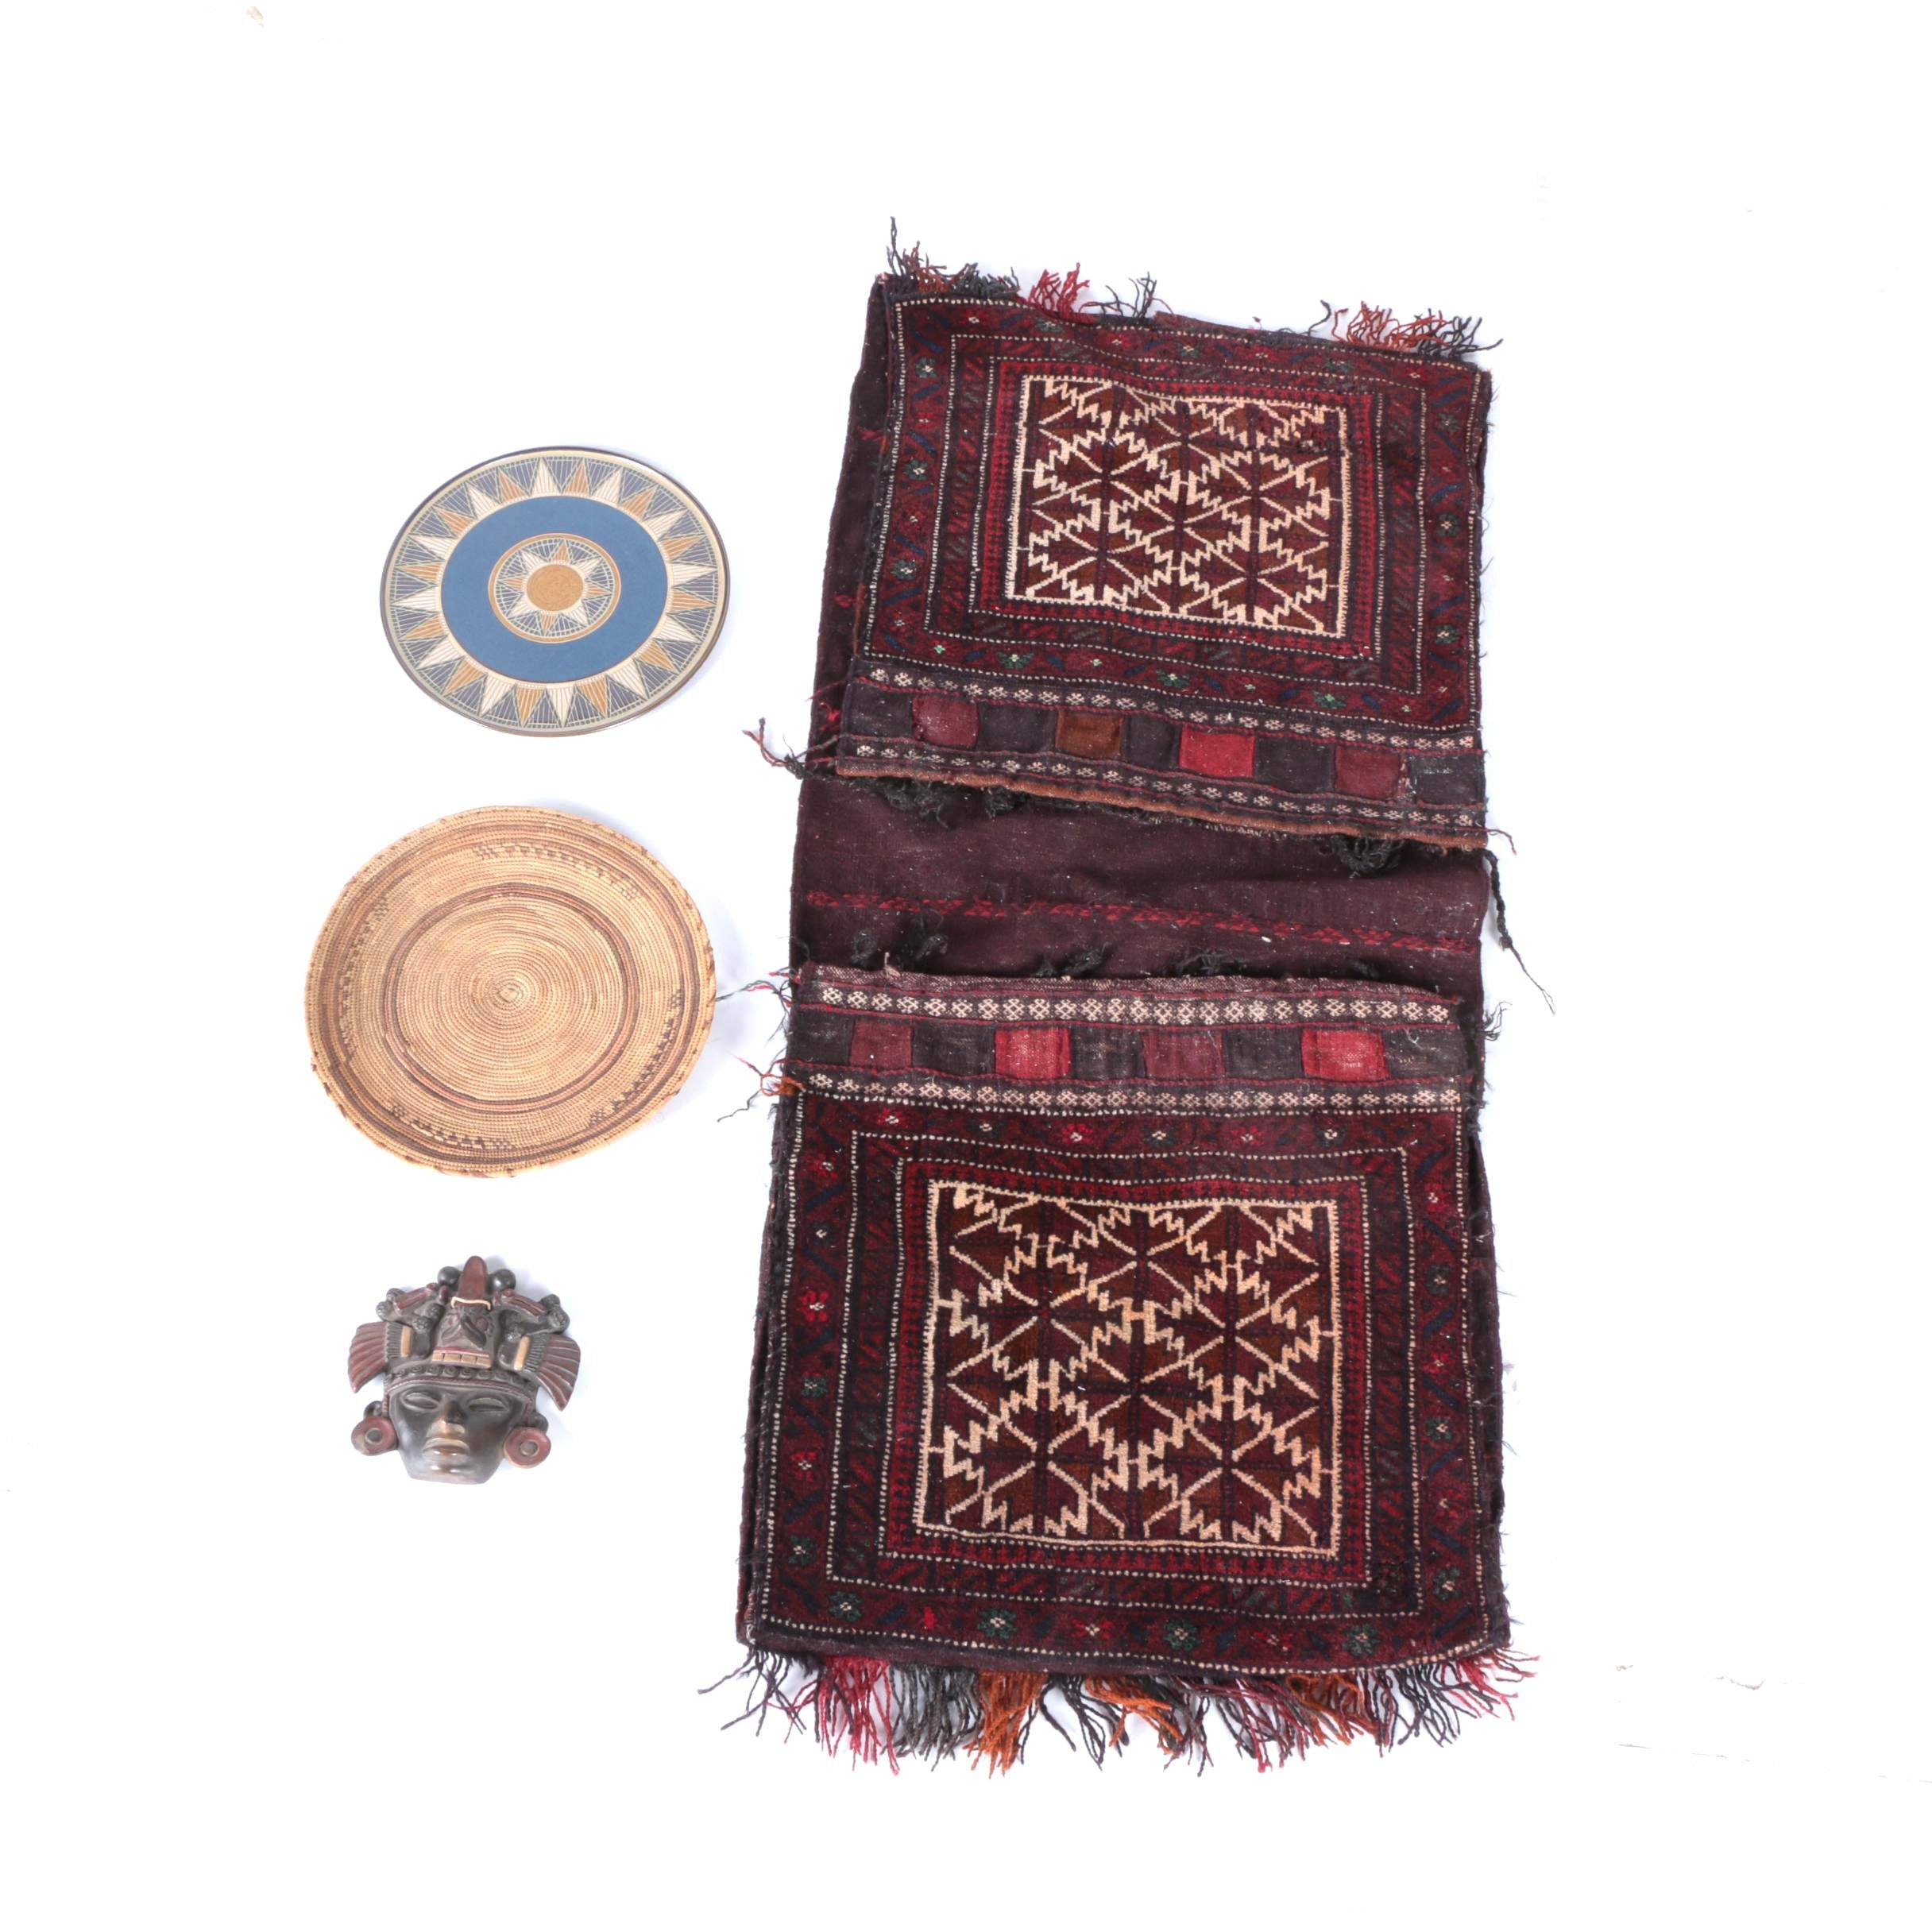 International Decor Featuring a Vintage Persian Saddle Blanket